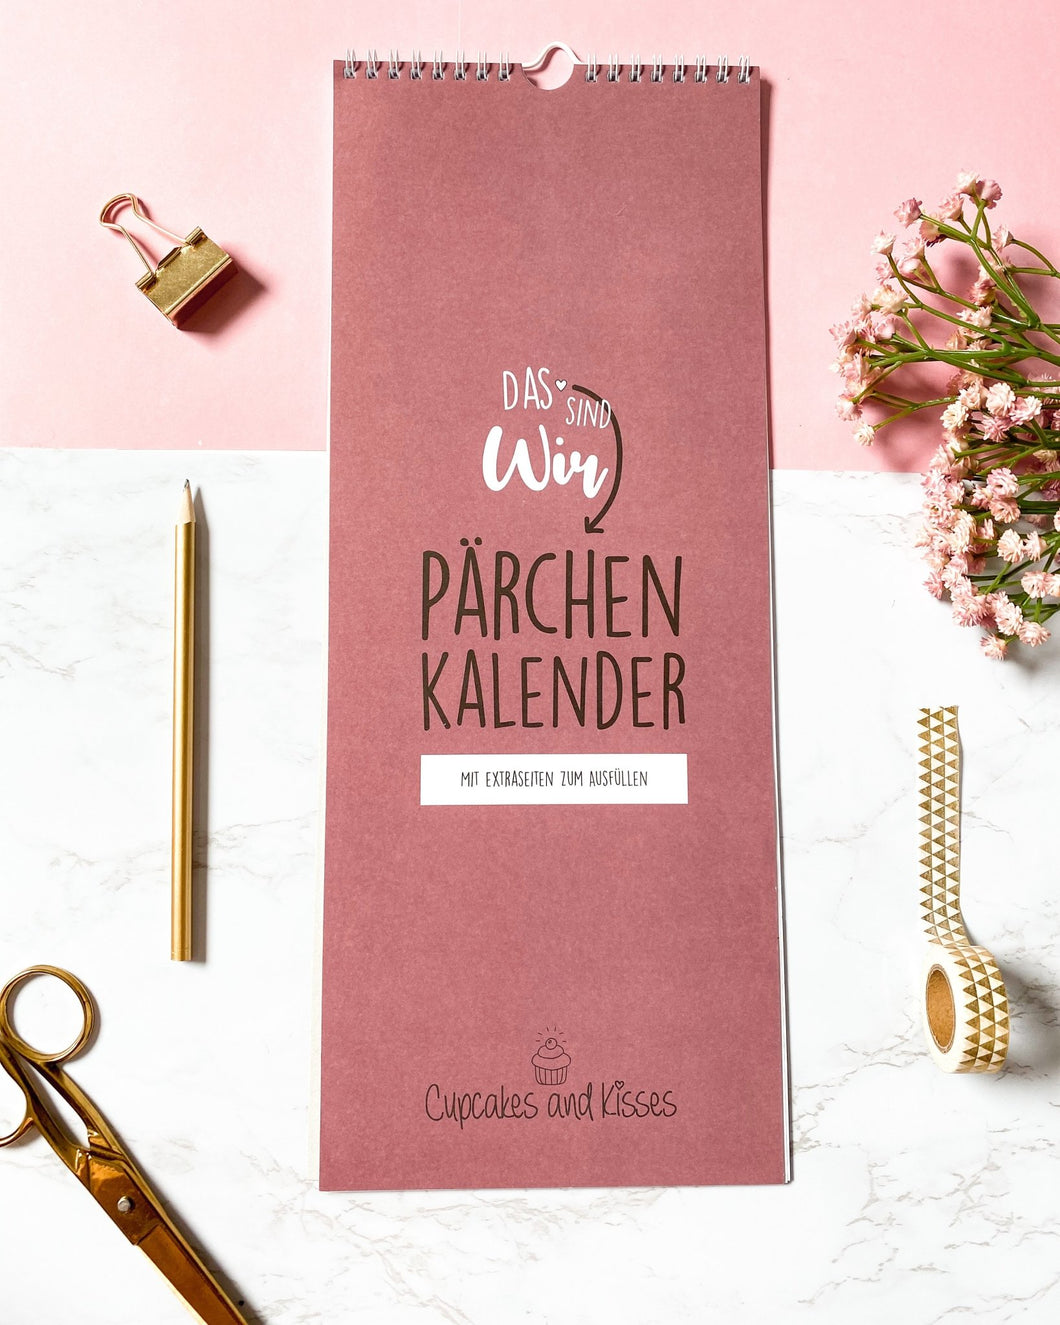 Pärchenkalender - Cupcakes & Kisses